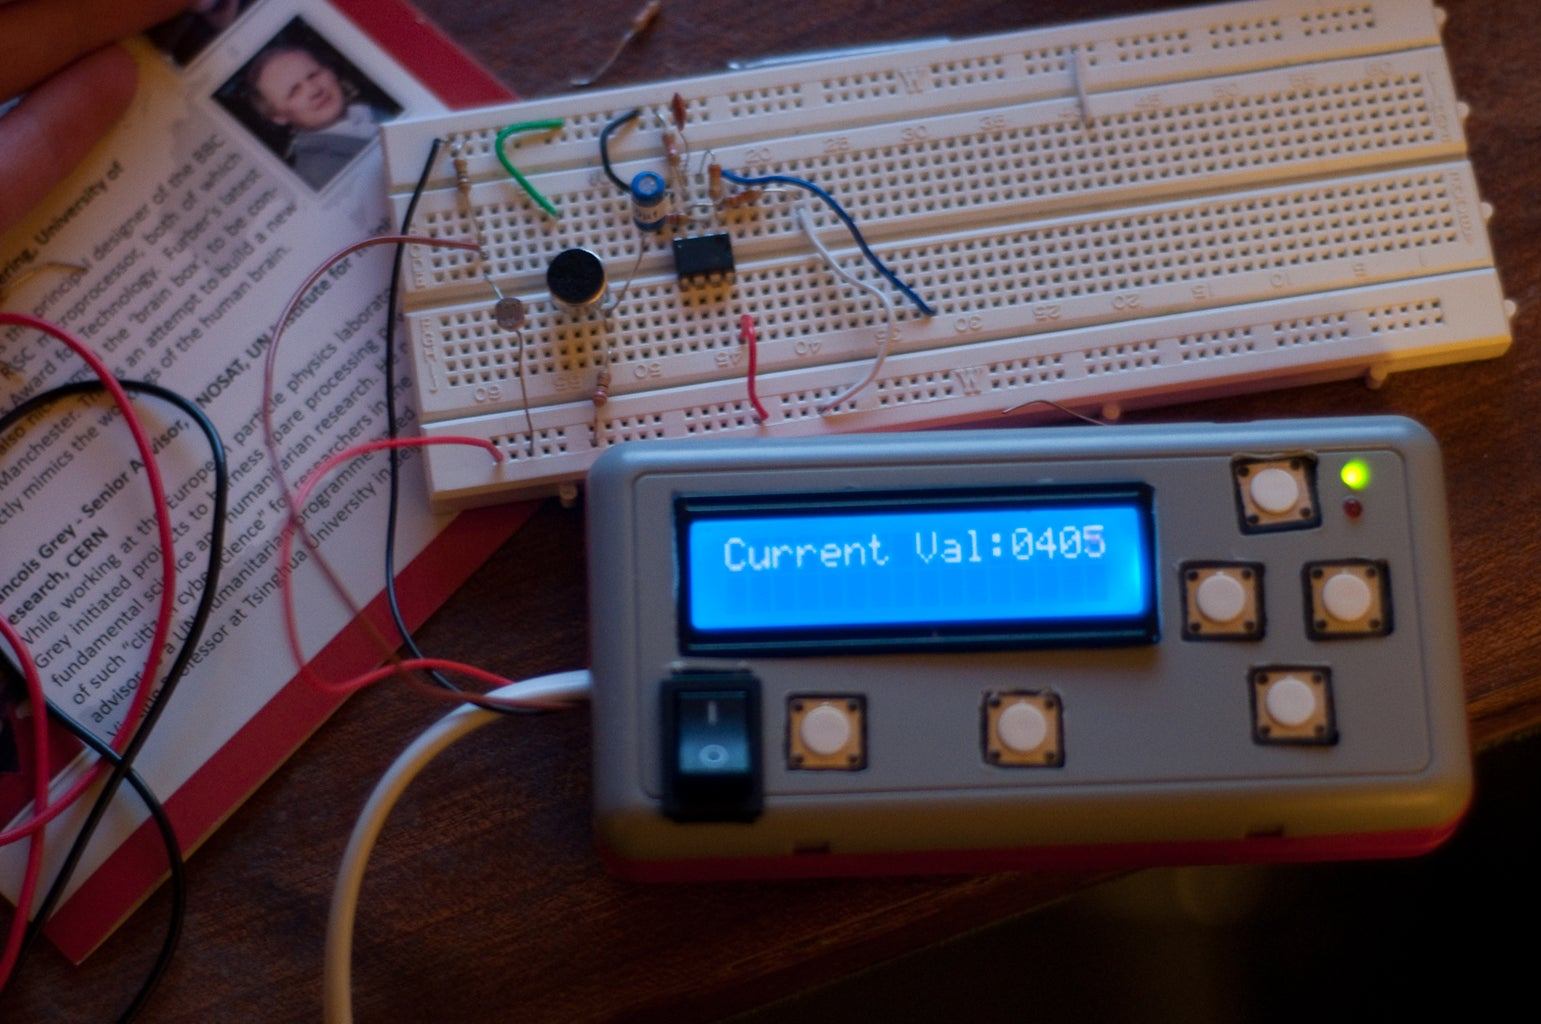 LCD, the Intervalometer and ADC